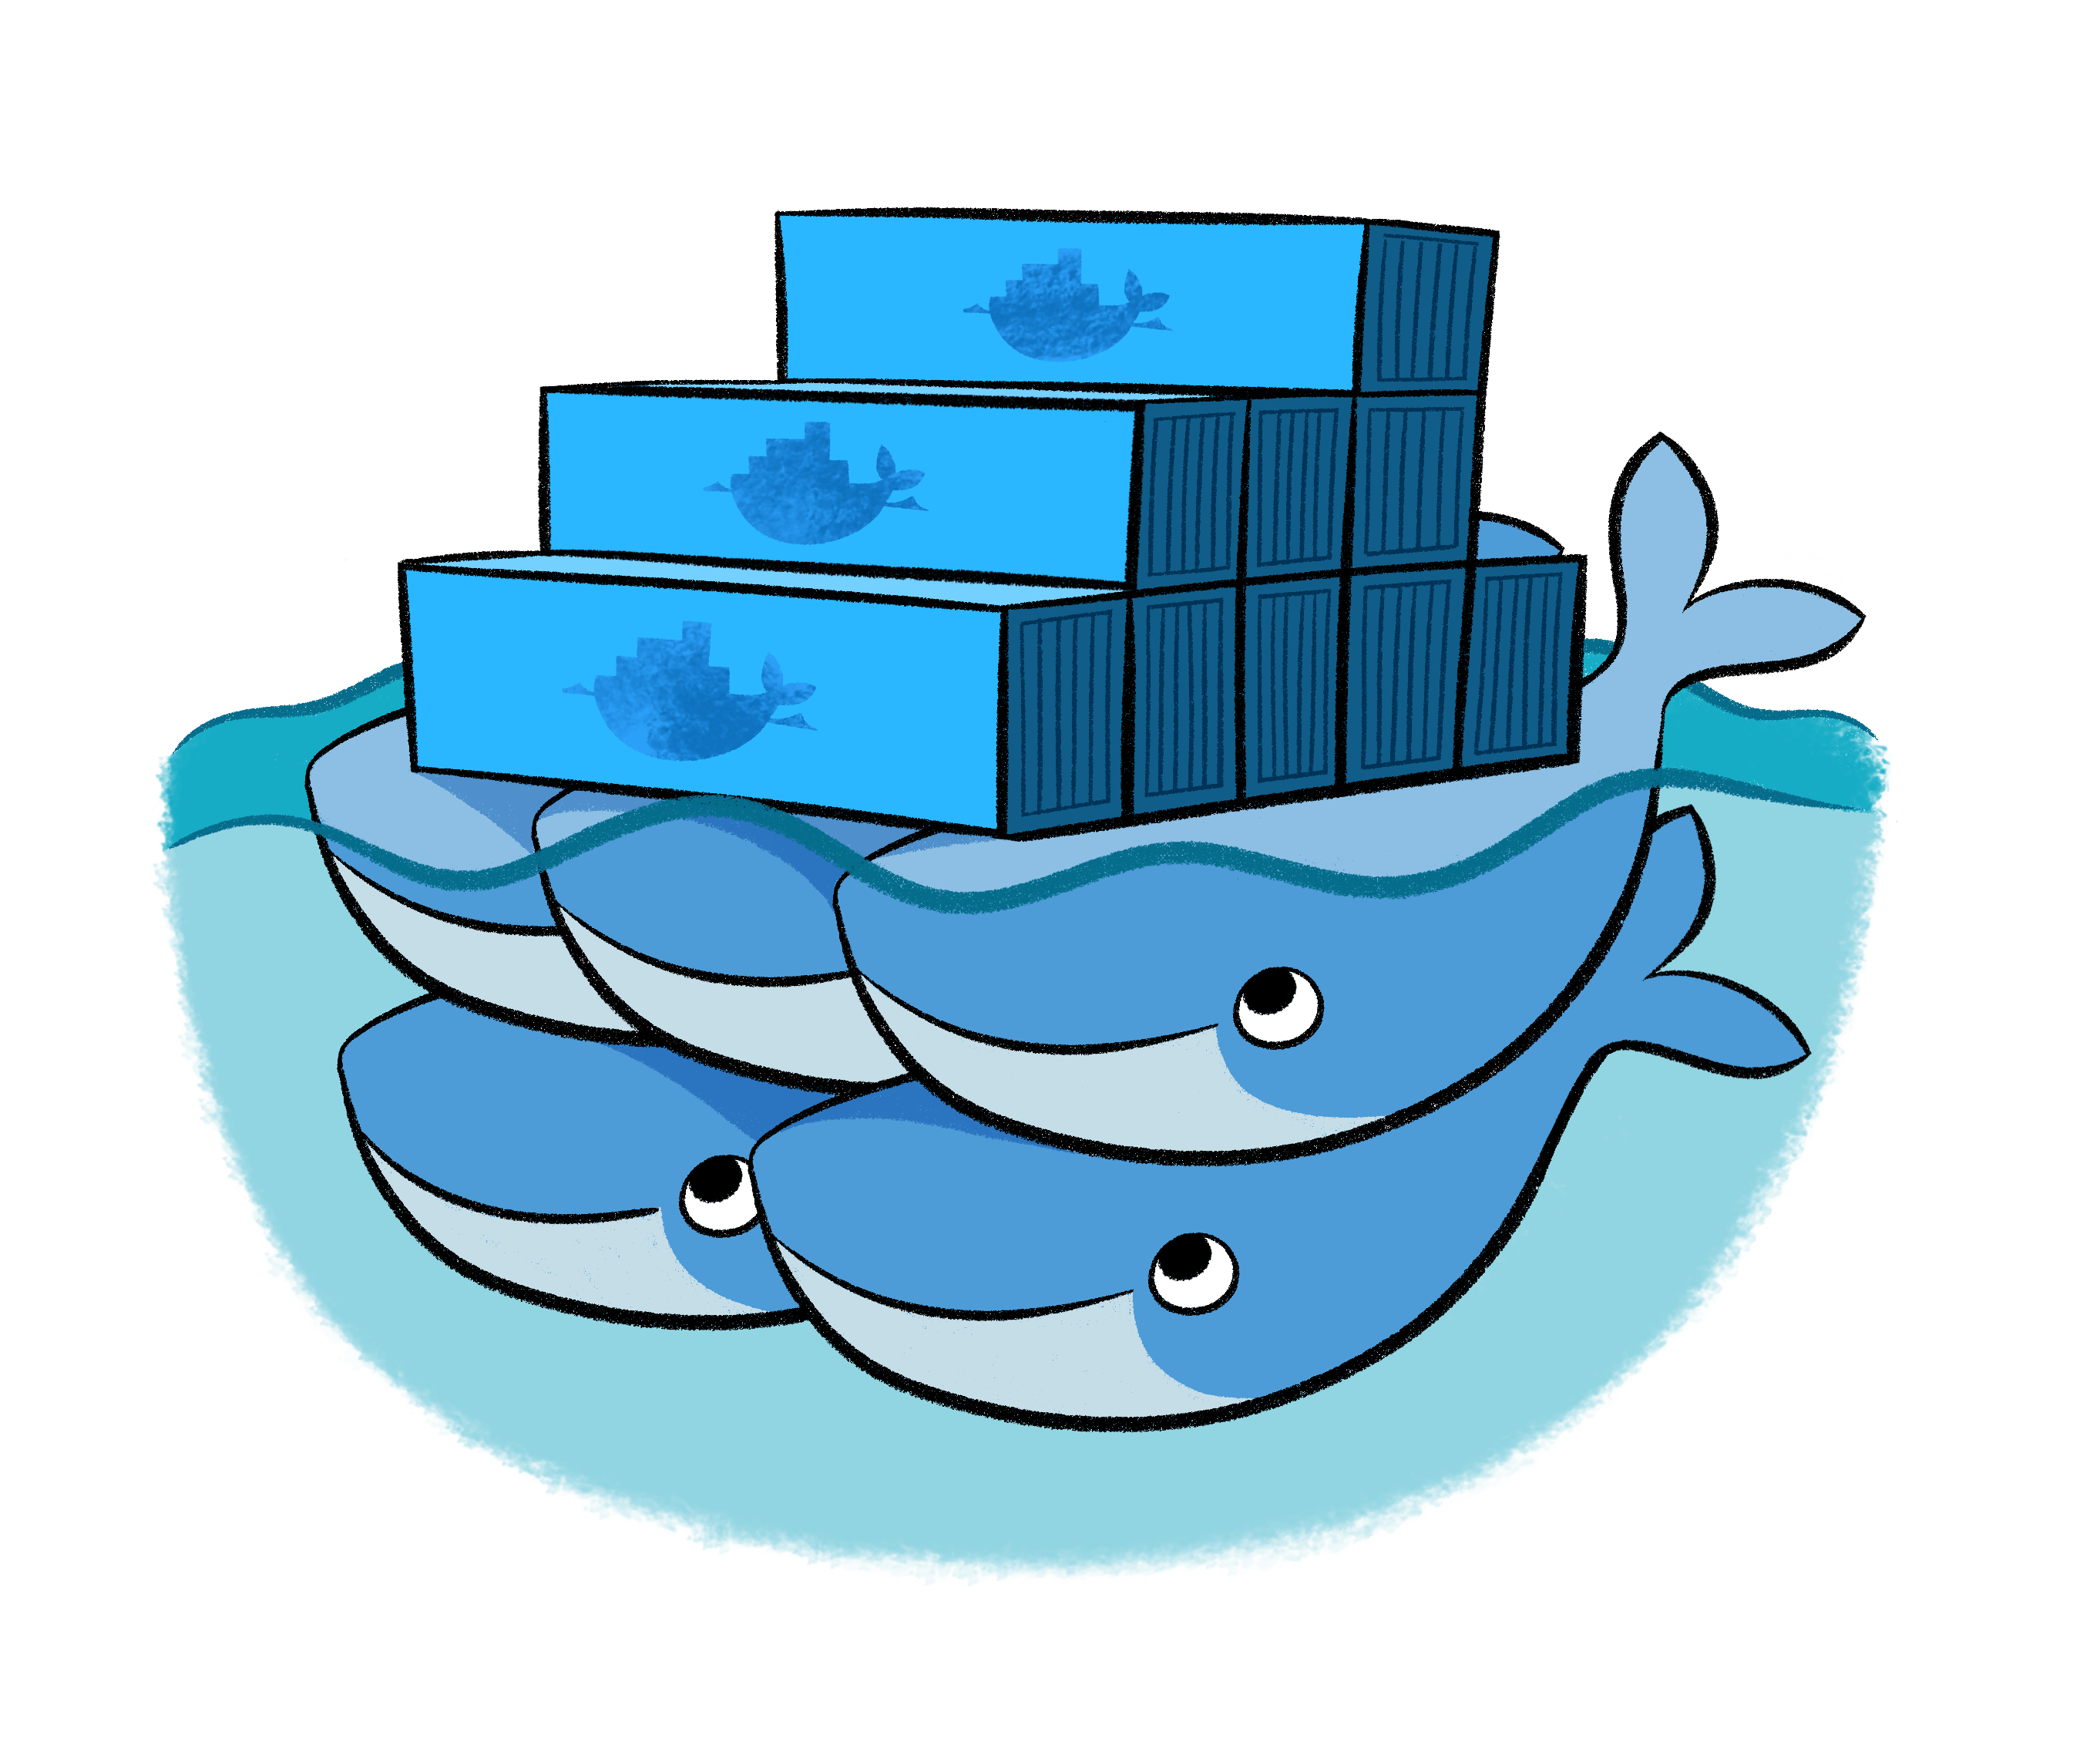 Transparent whale docker. Whales blog dockerwhalestransparent